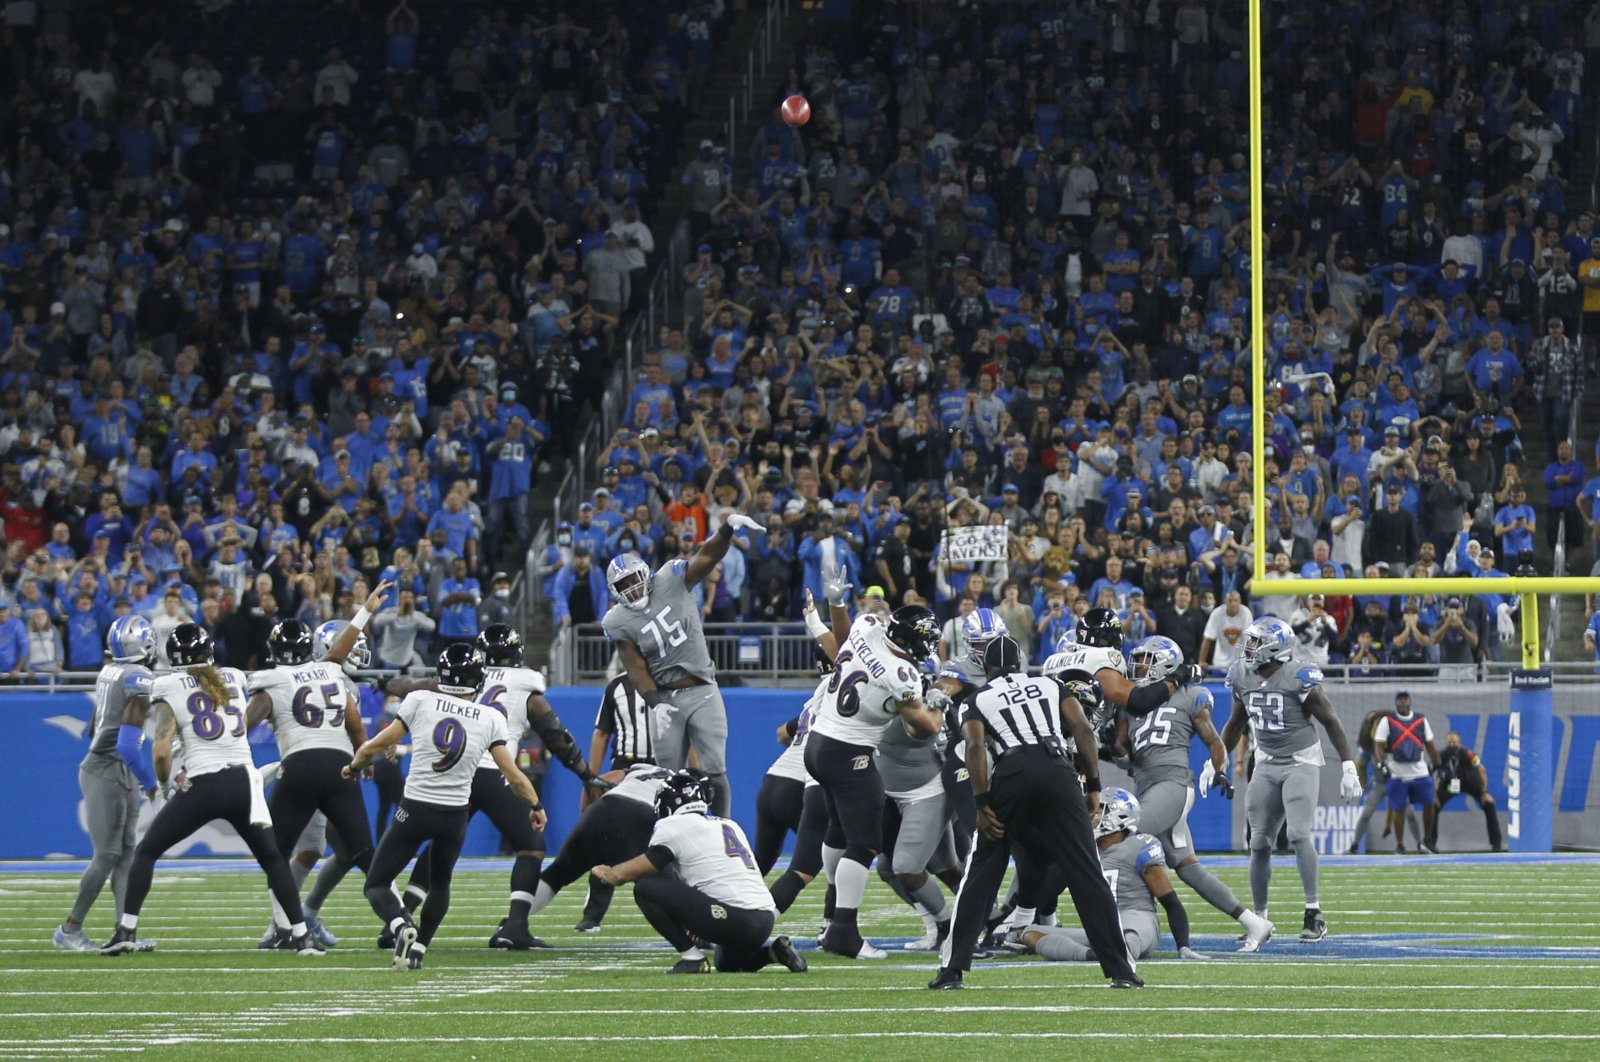 Baltimore Ravens kicker Justin Tucker (9) kicks a 66-yard field goal in the second half of an NFL football game against the Detroit Lions in Detroit, Michigan, U.S., Sept. 26, 2021. (AP Photo)